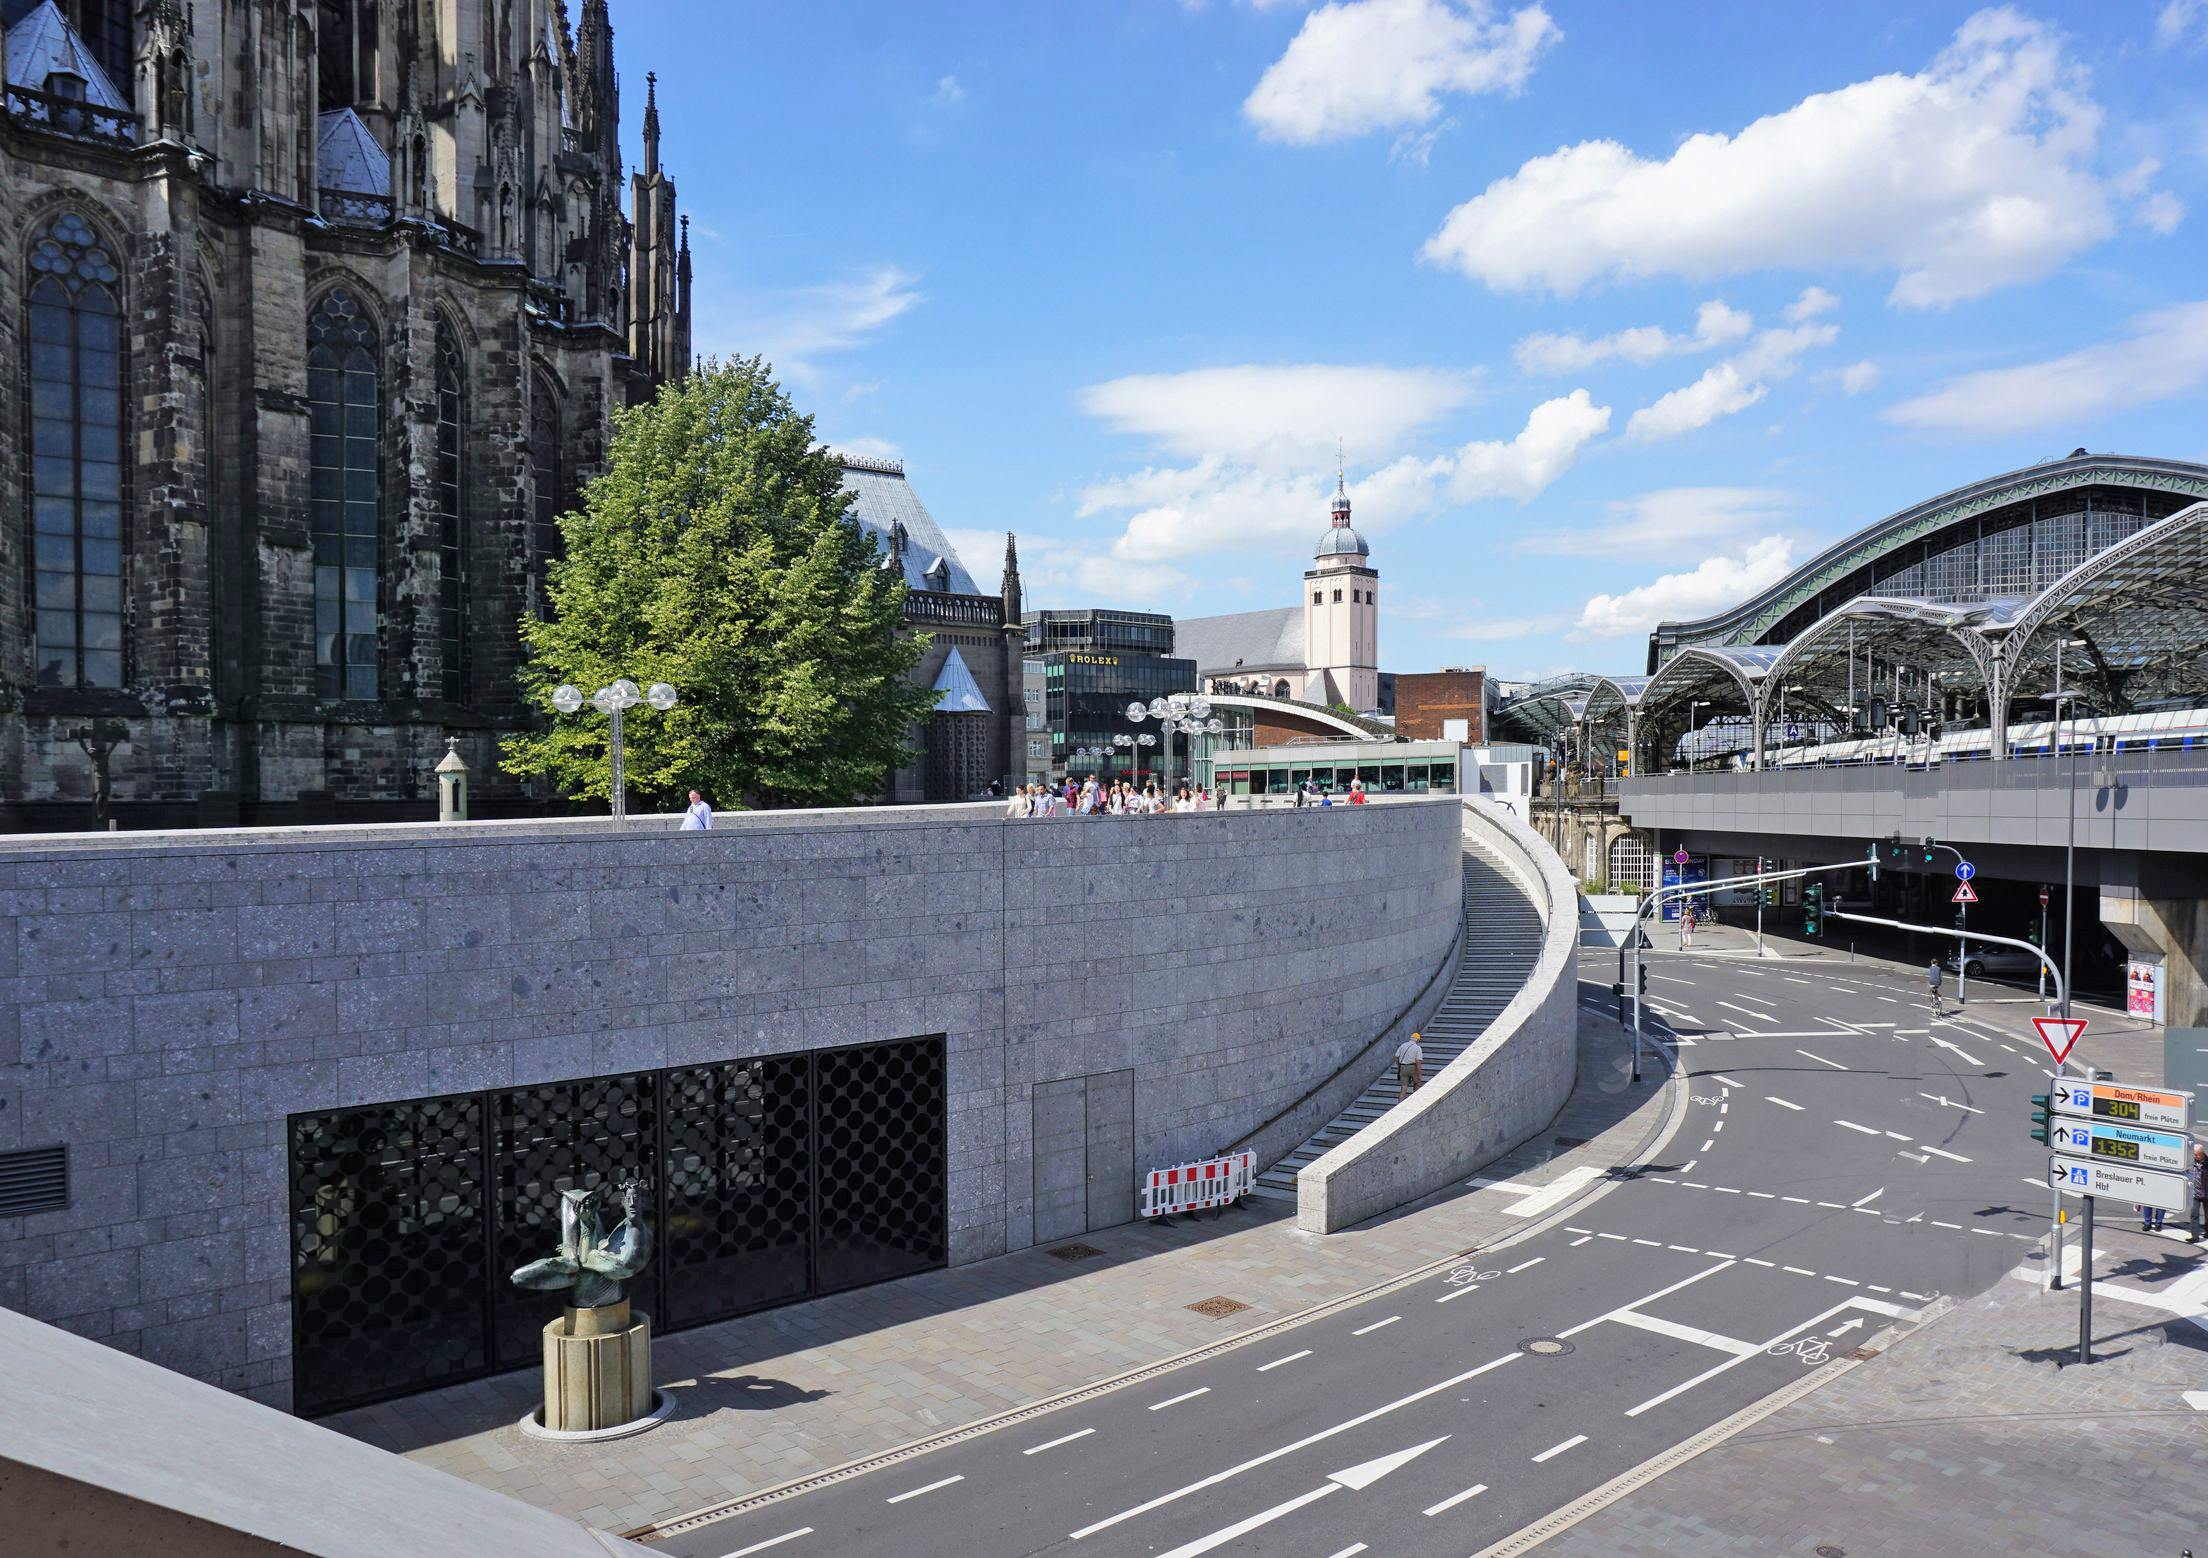 Allmann Sattler Wappner won the competition for the redesign of this central zone around the Cologne cathedral in 2002, but it took a while to be finished. Copyright: Marlene Zeltwanger.